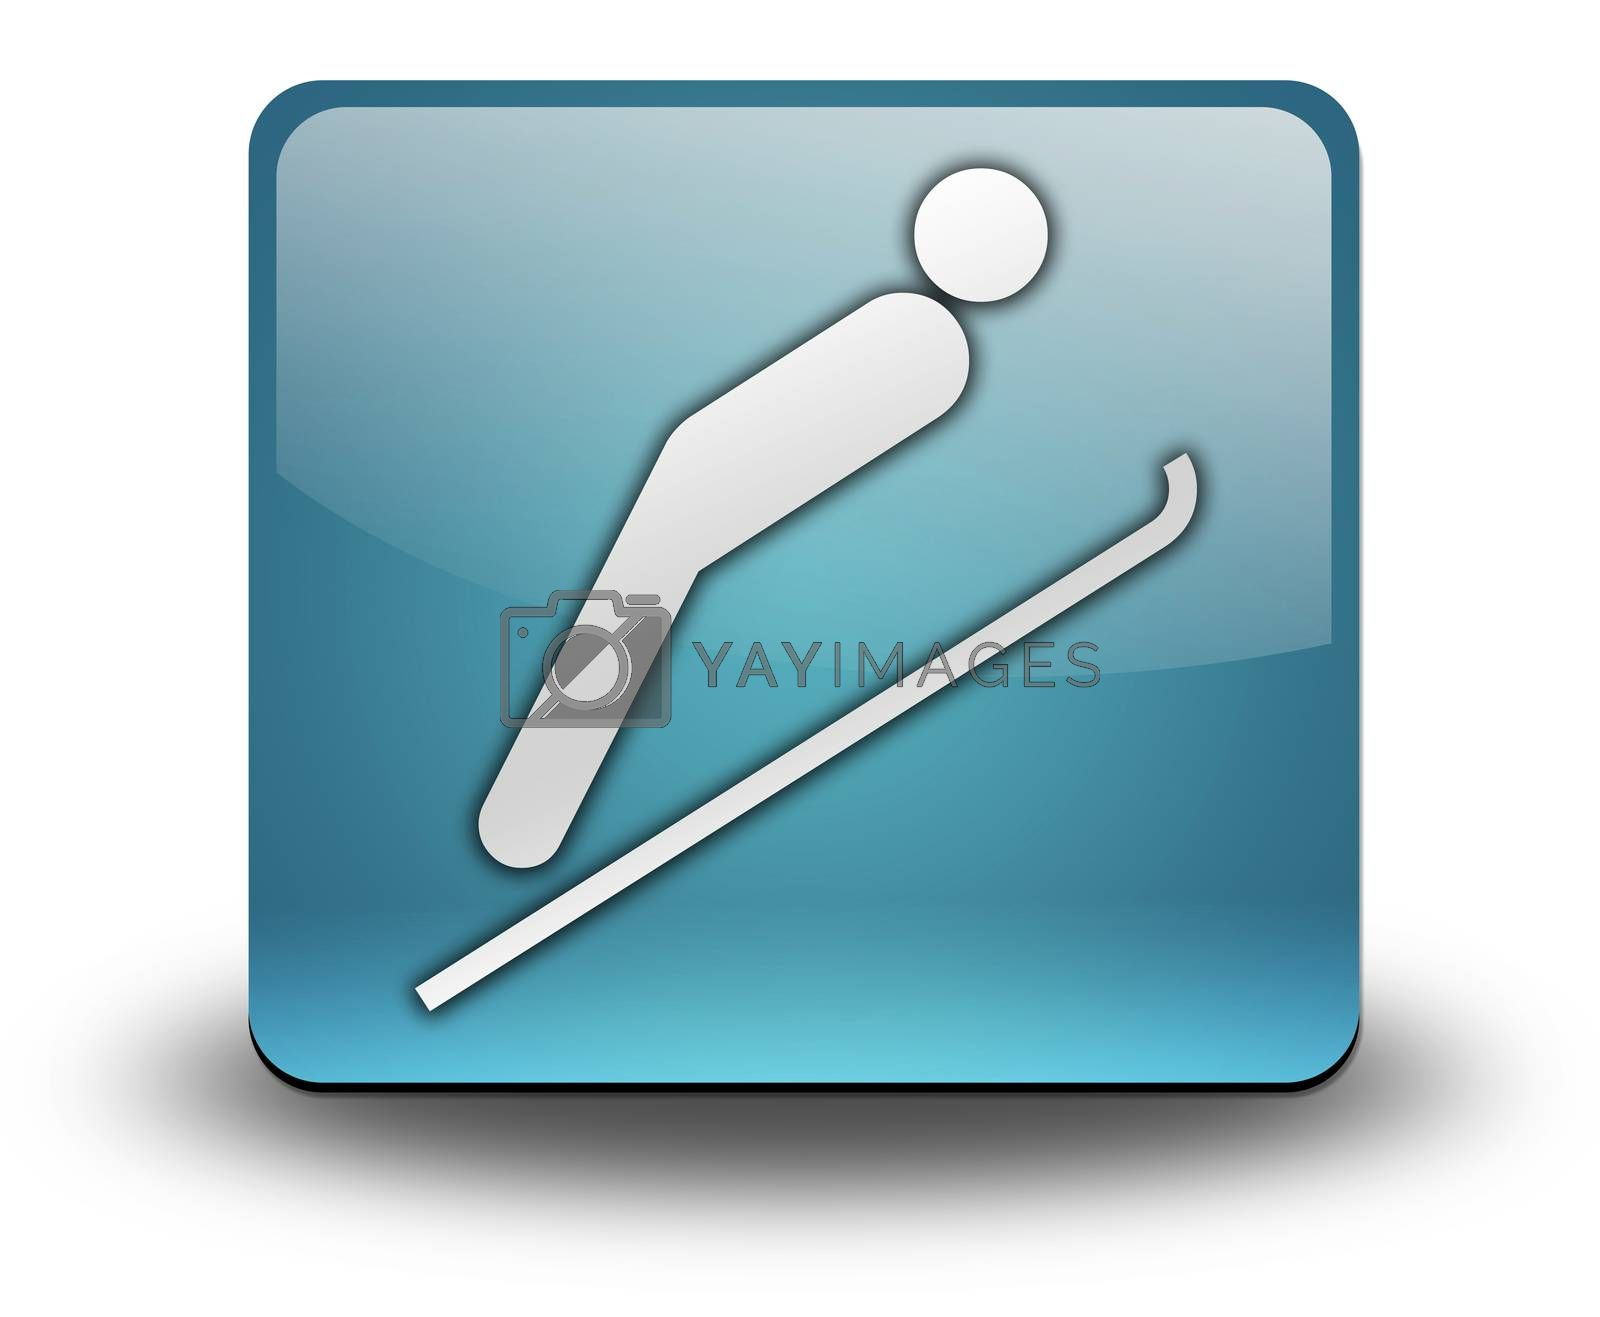 Icon, Button, Pictogram Ski Jumping by mindscanner